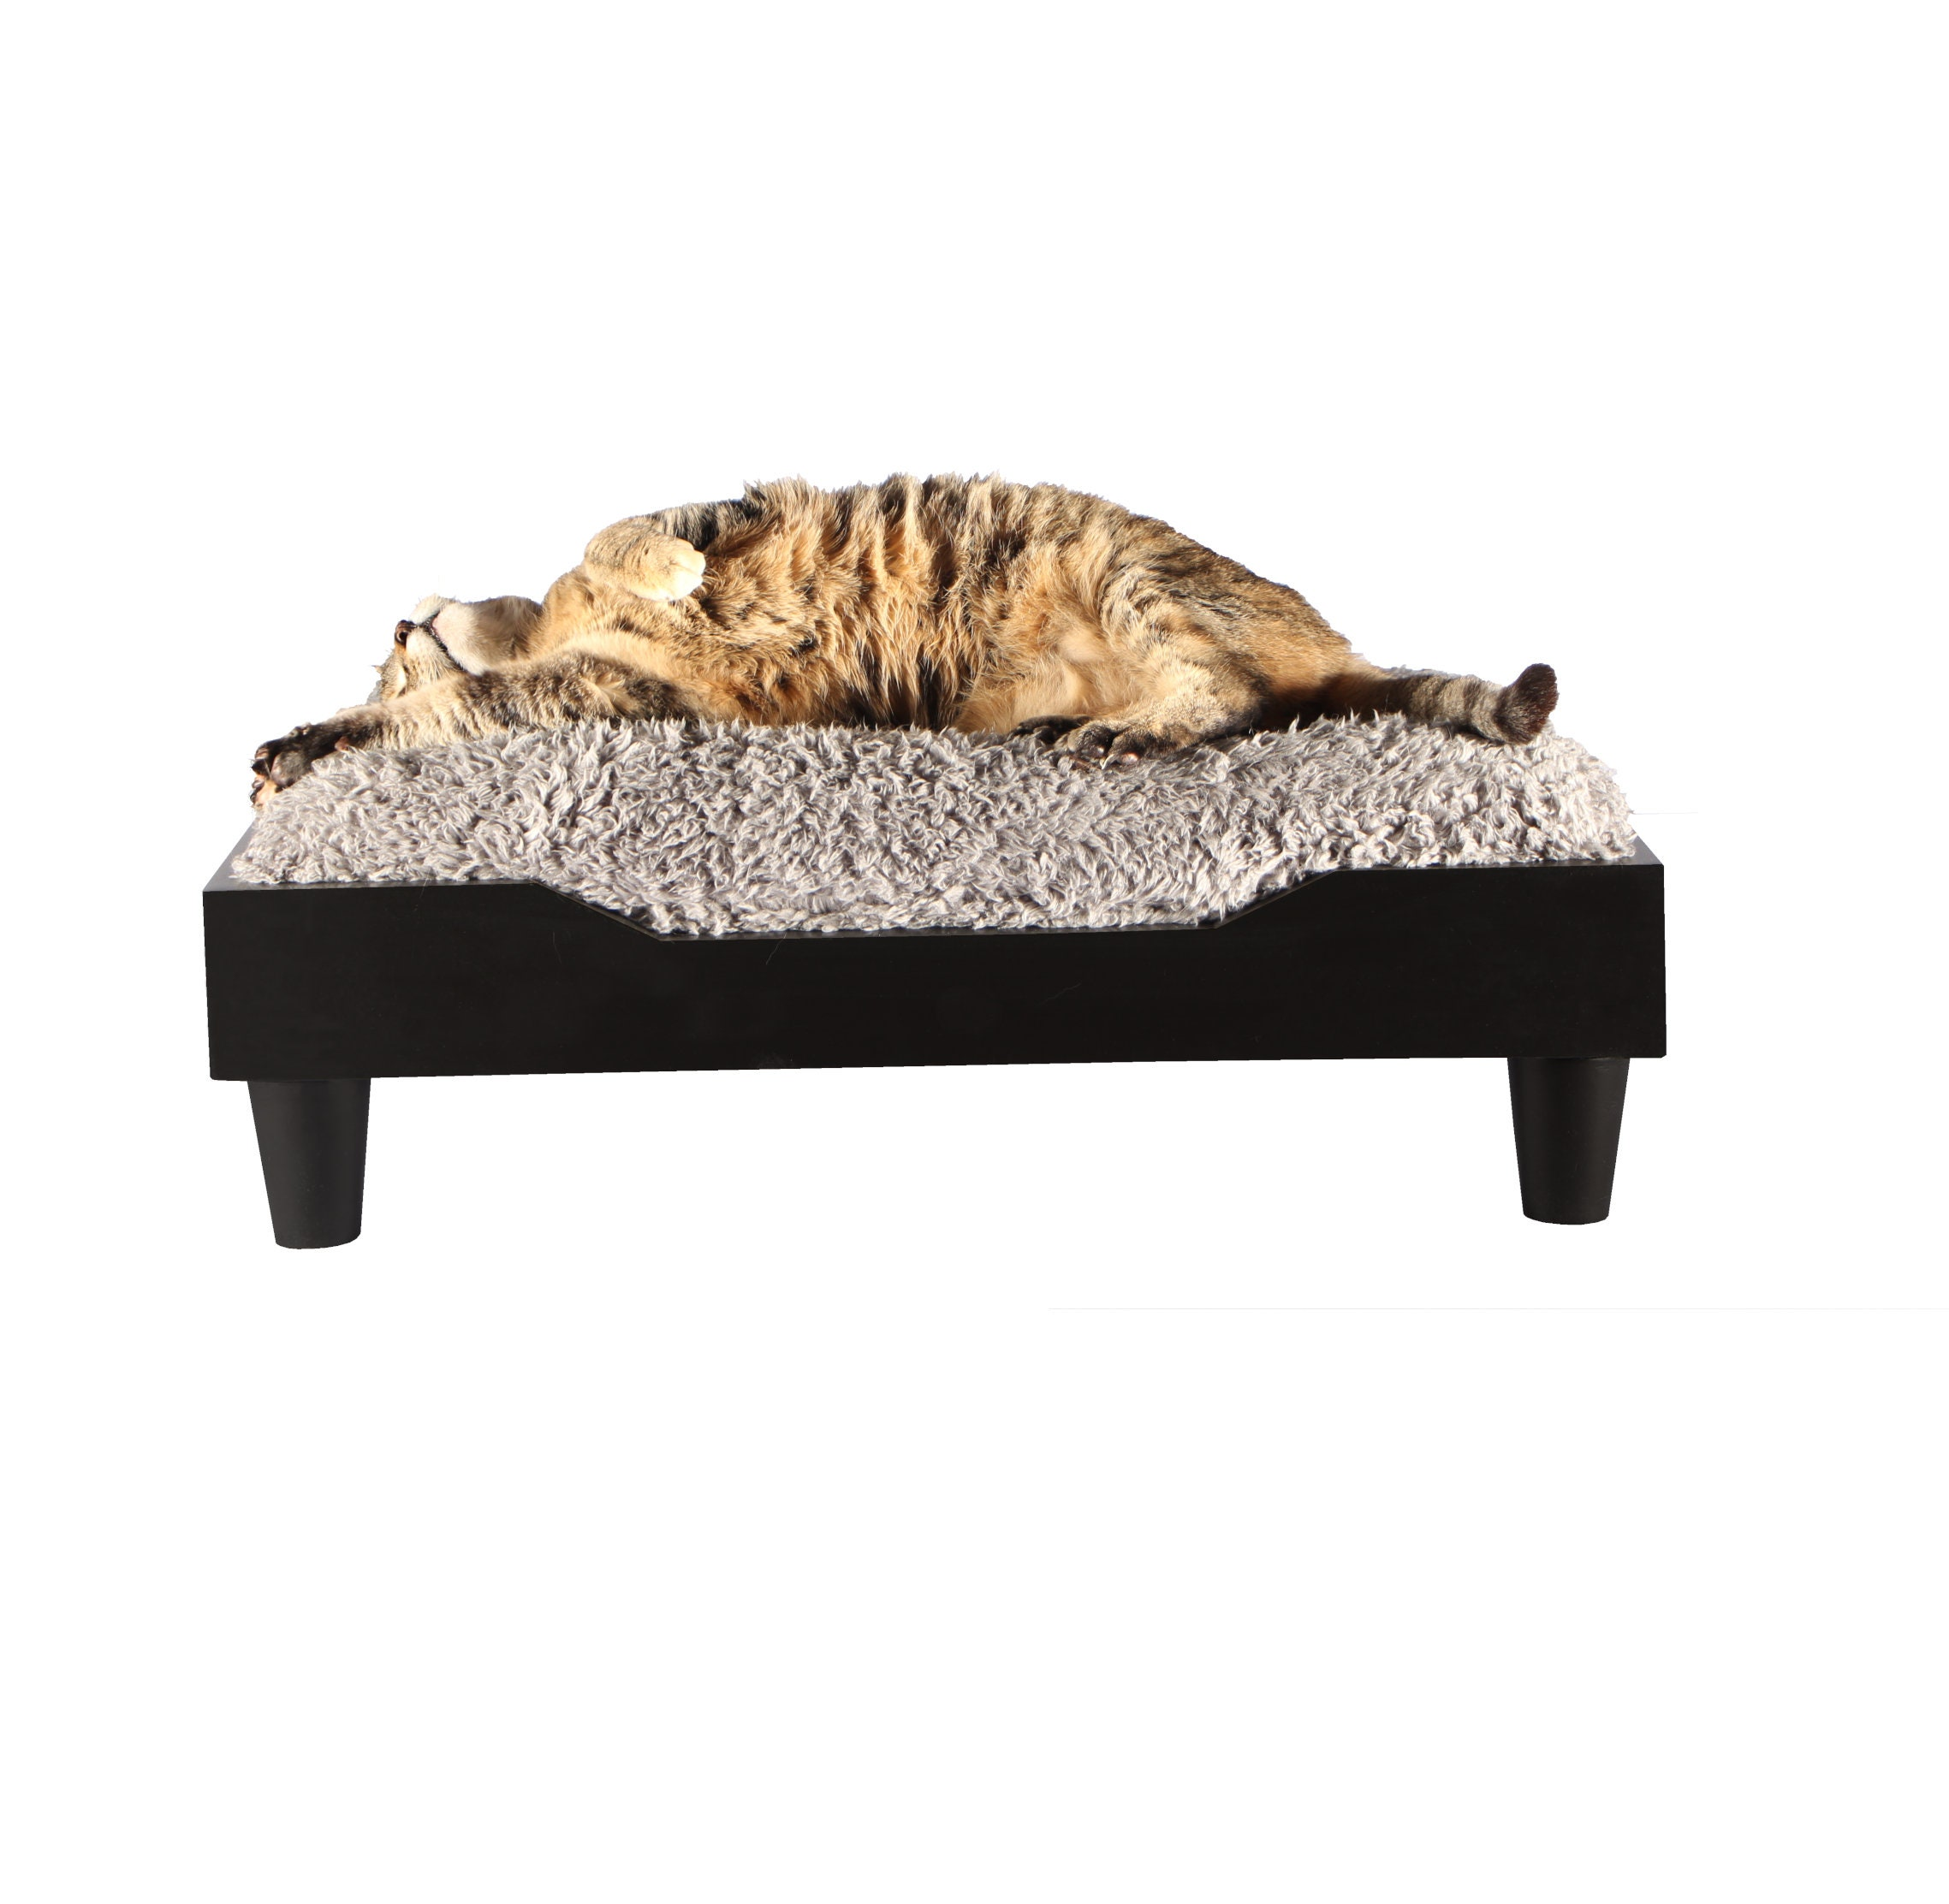 Braumhaus Uber Luxury Small Dog Pet Cat Bed Modern Contemporary Stylish Free Shipping